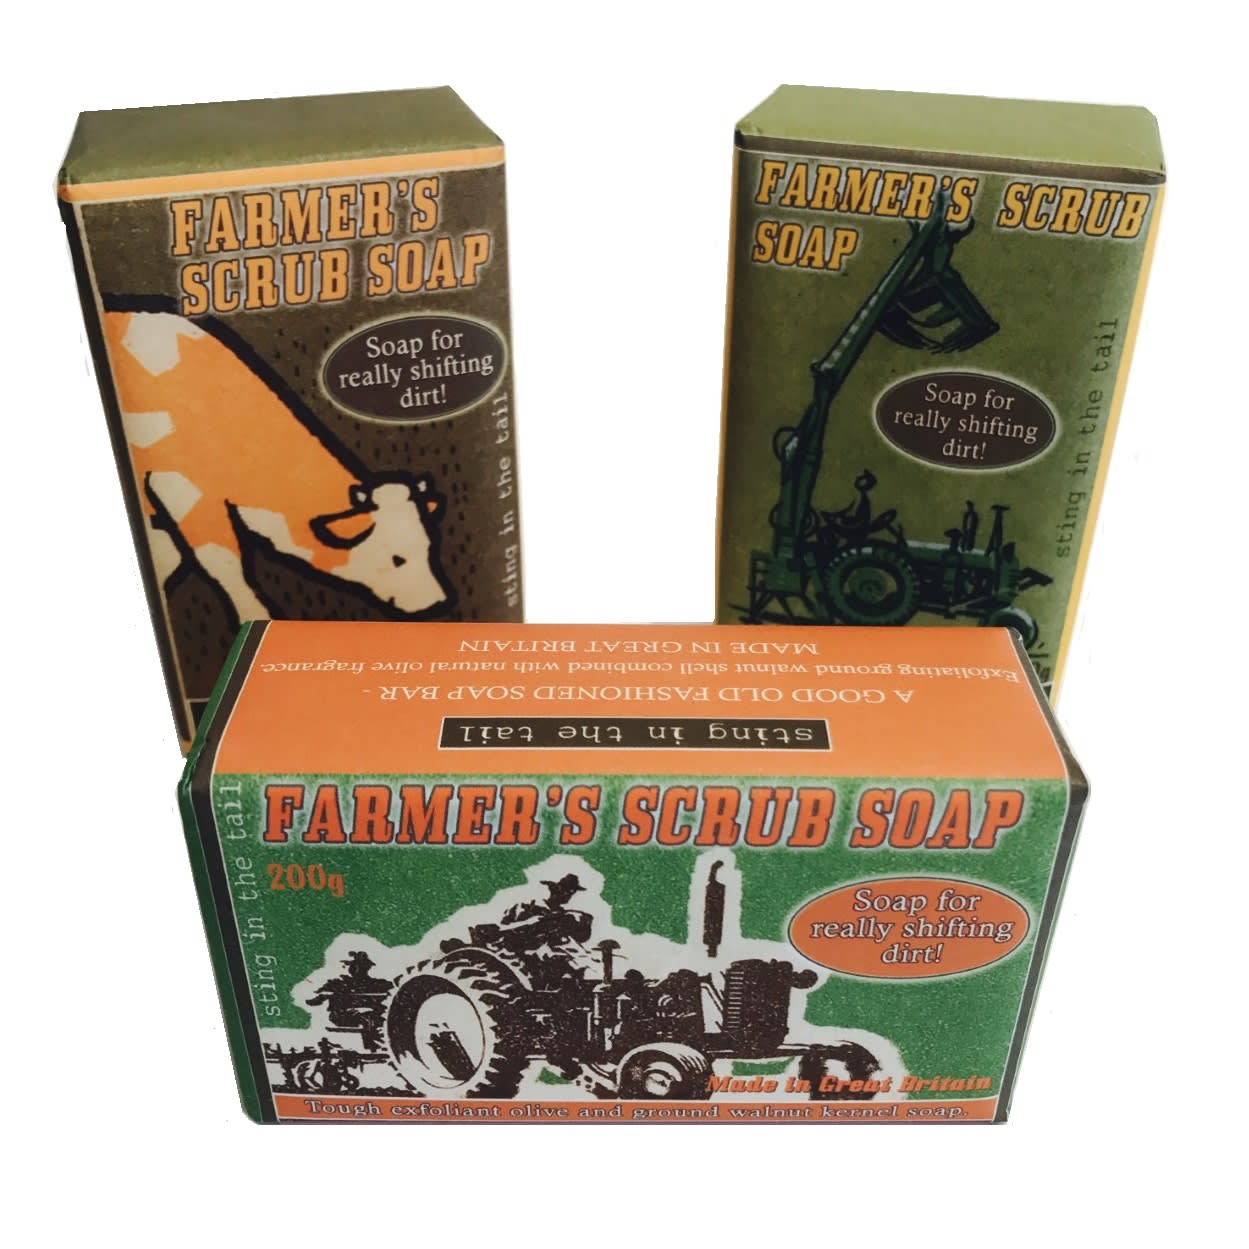 Sting In The Tail Olive & Walnut Farmer's Combine Harvester Exfoliating Bar